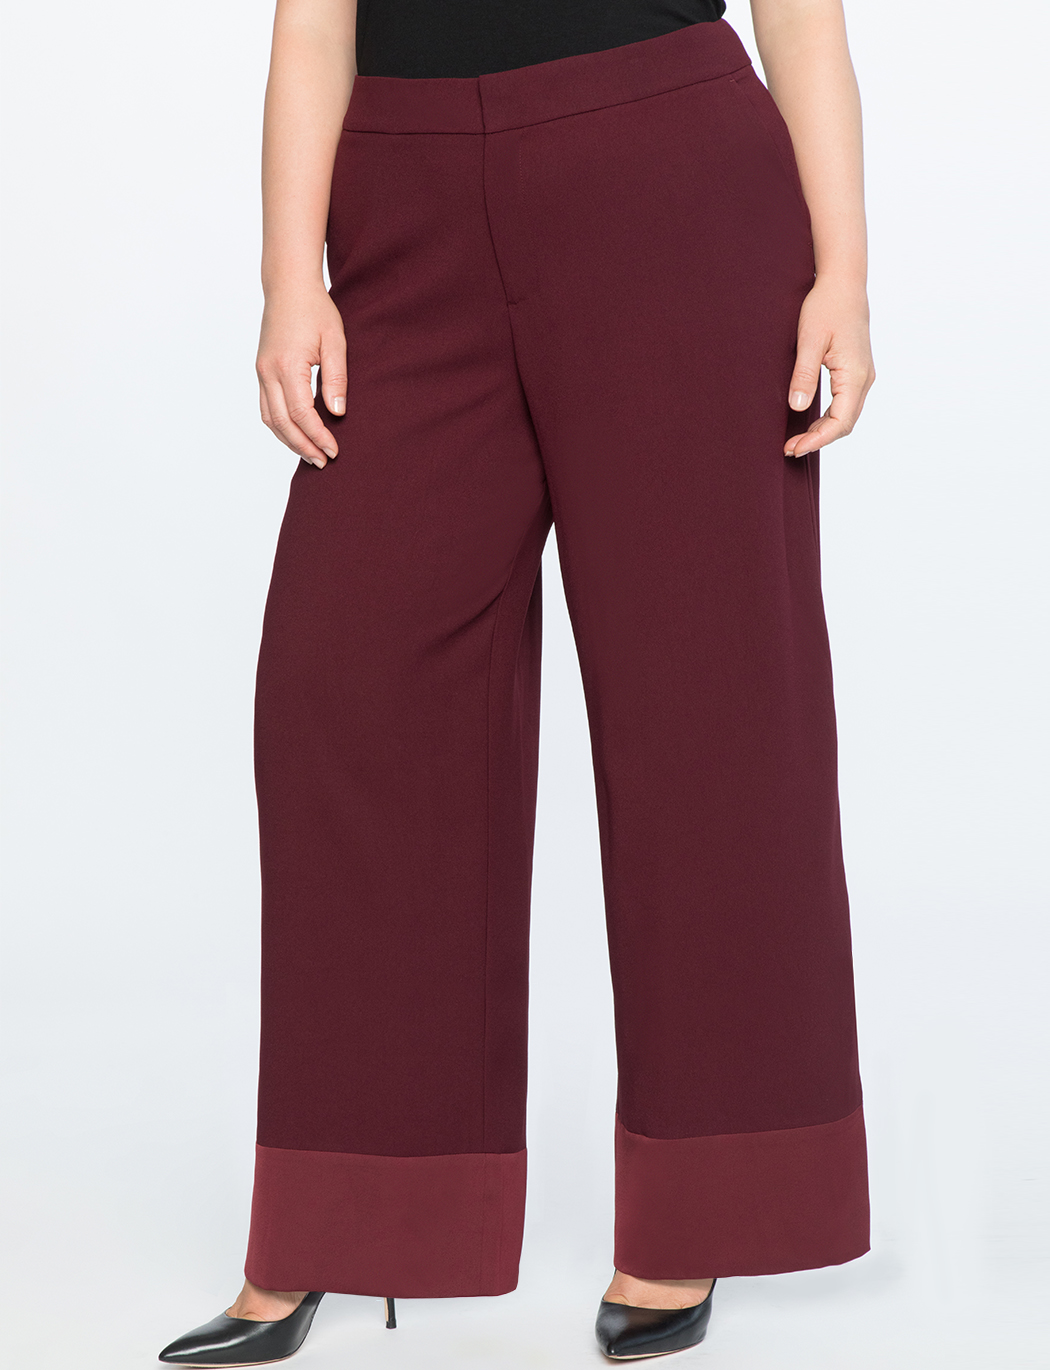 Wide Leg Satin Cuff Trouser   $49.90